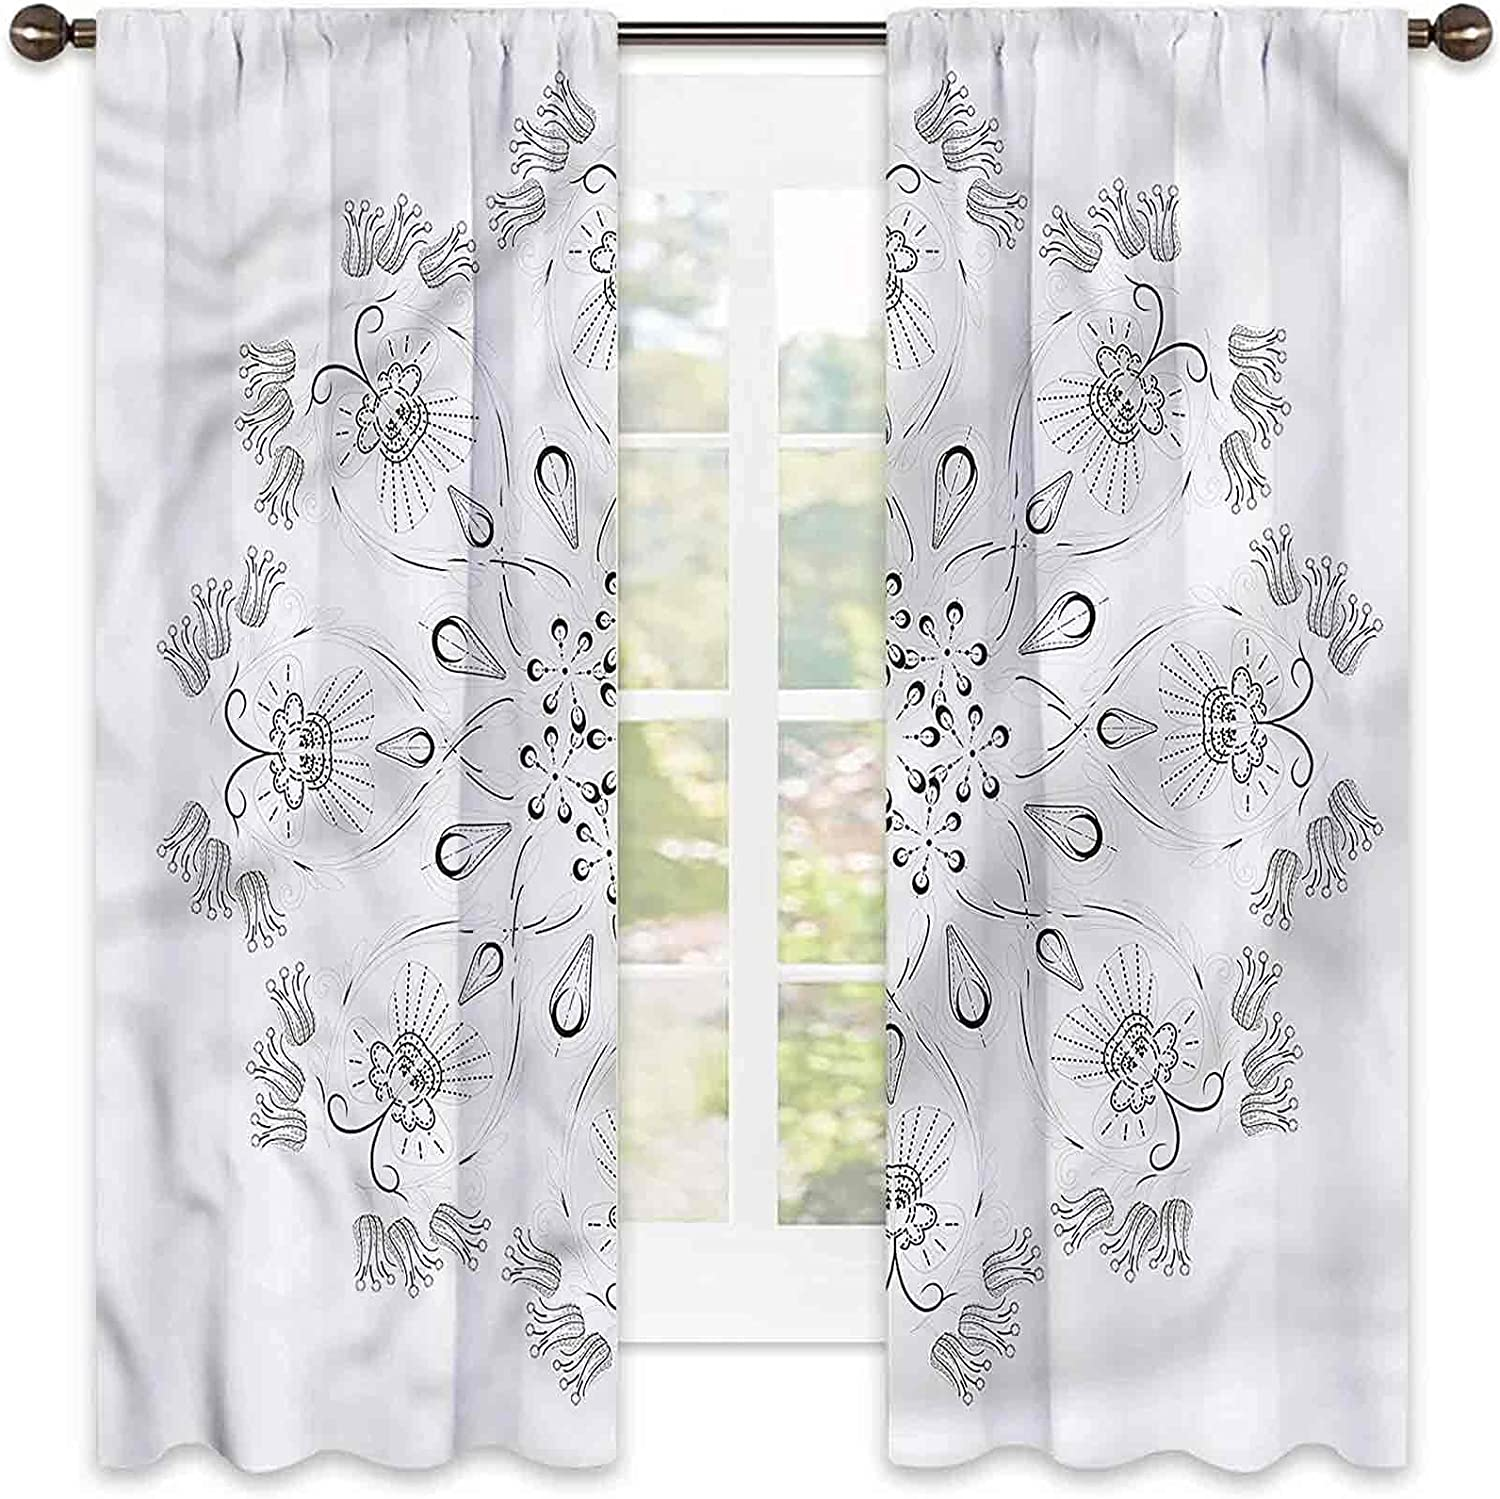 2021 new Butterfly Heat Insulation Curtain Paisley Limited Special Price Petals Inspired Livi